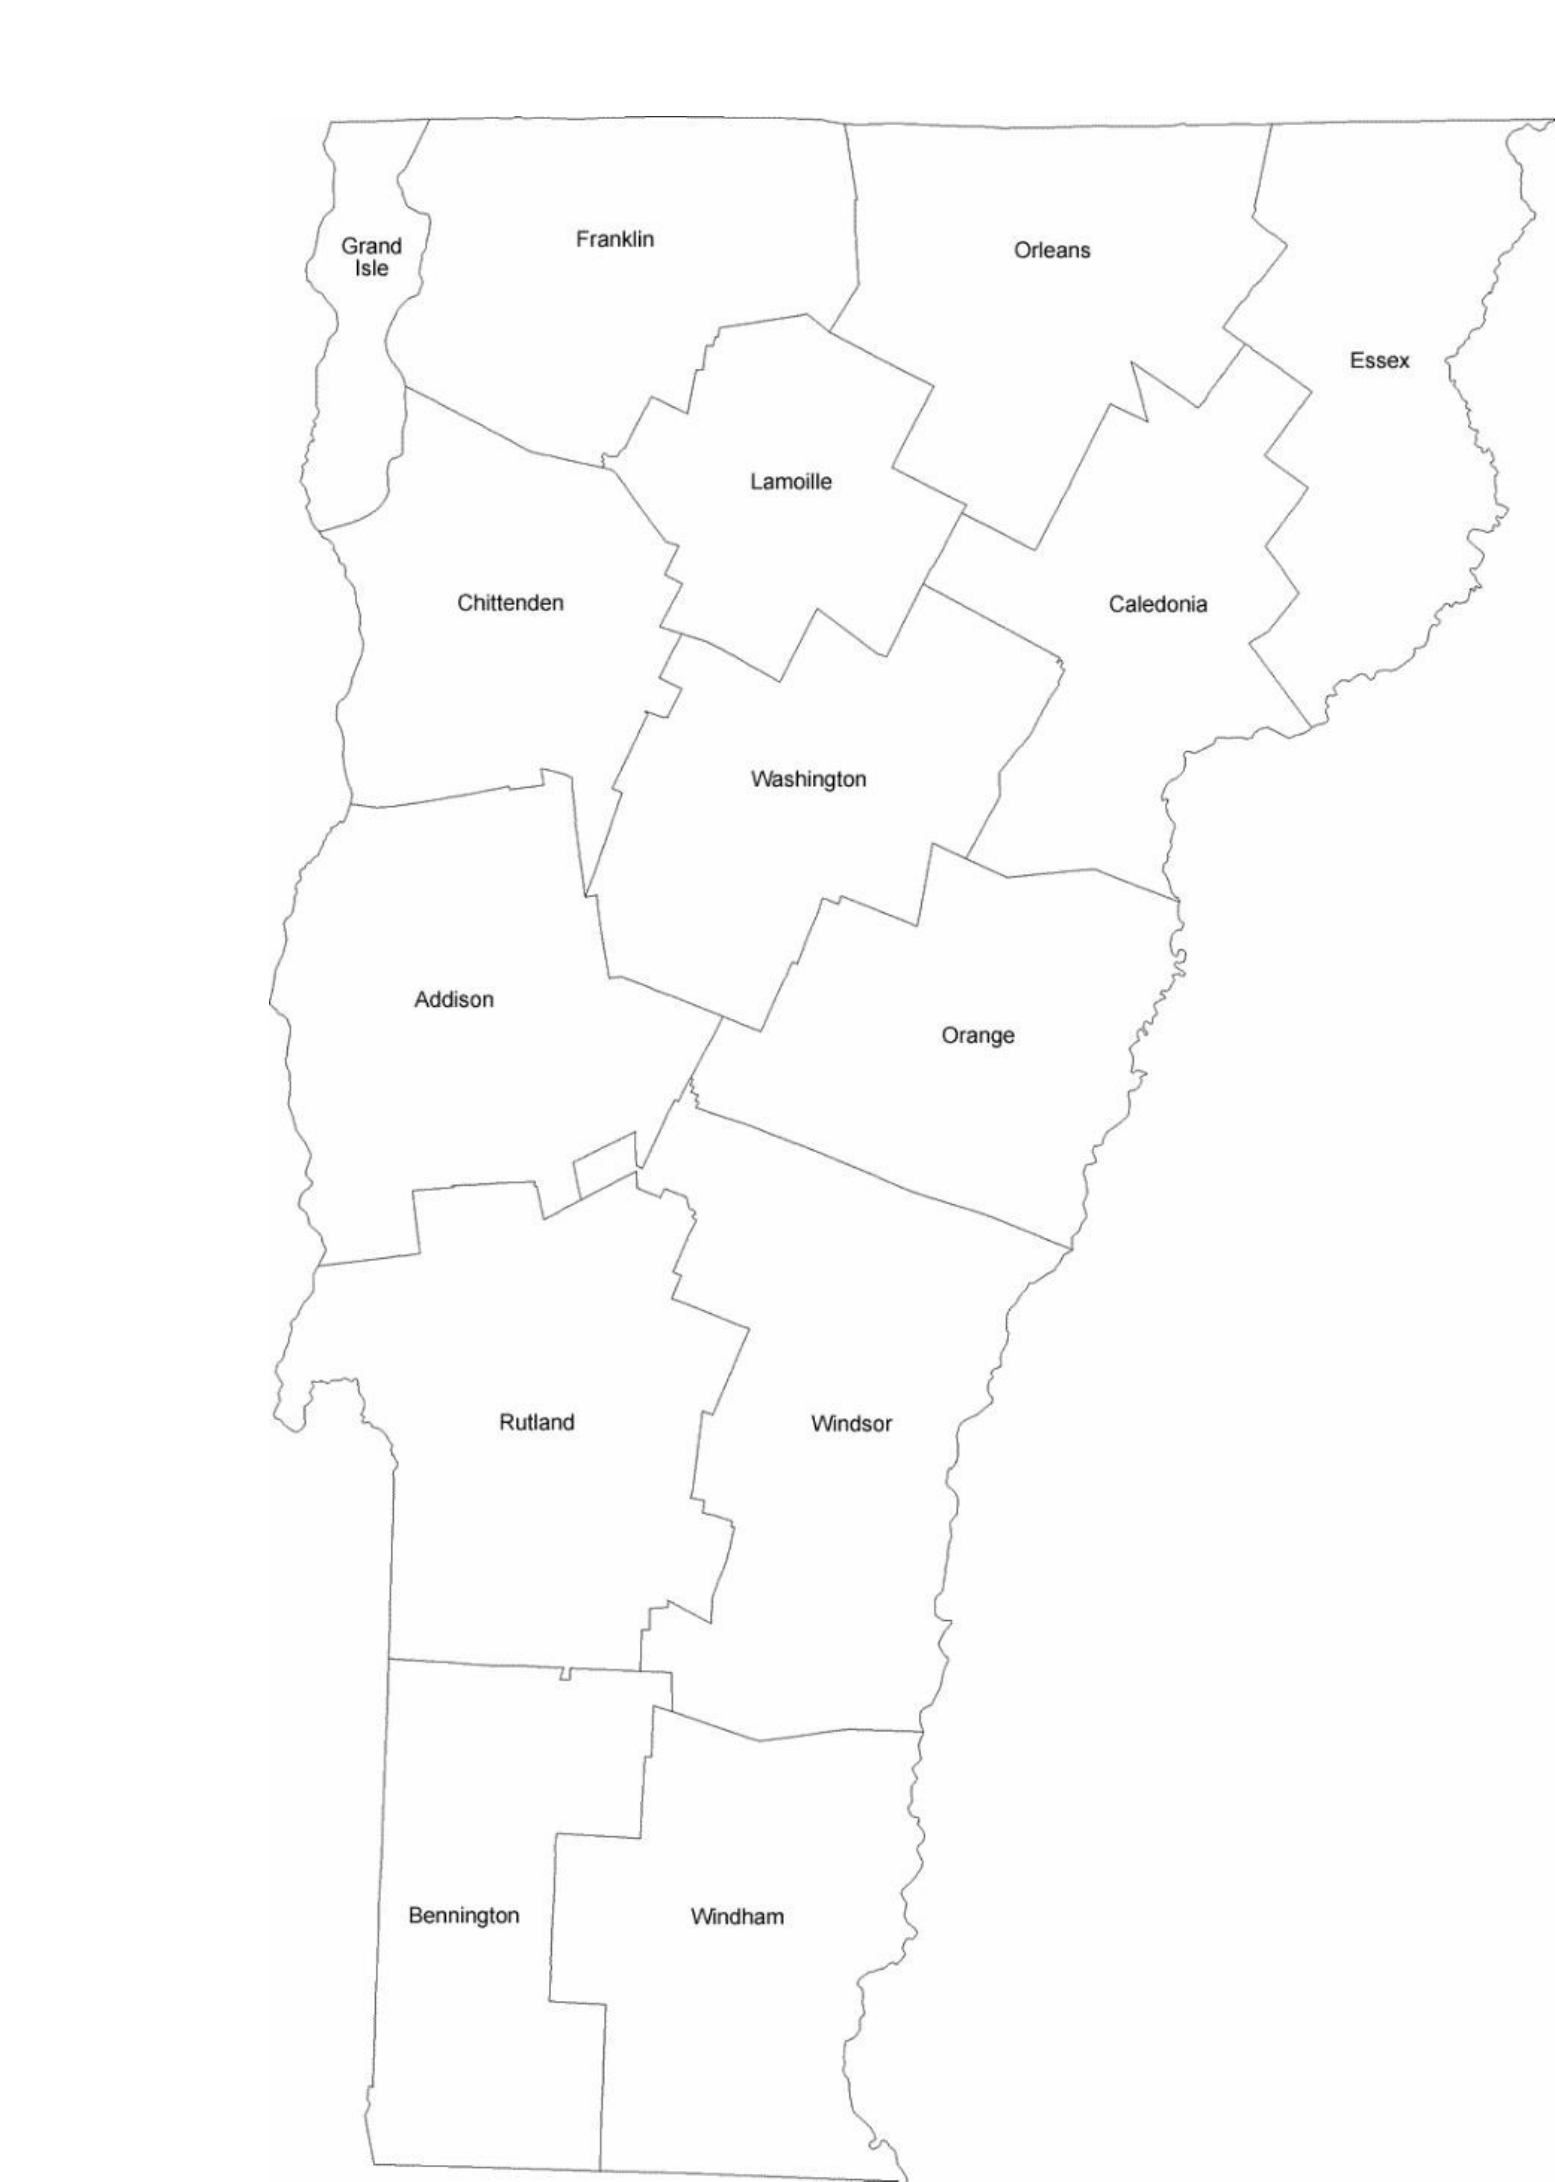 Vermont County Map With County Names Free Download